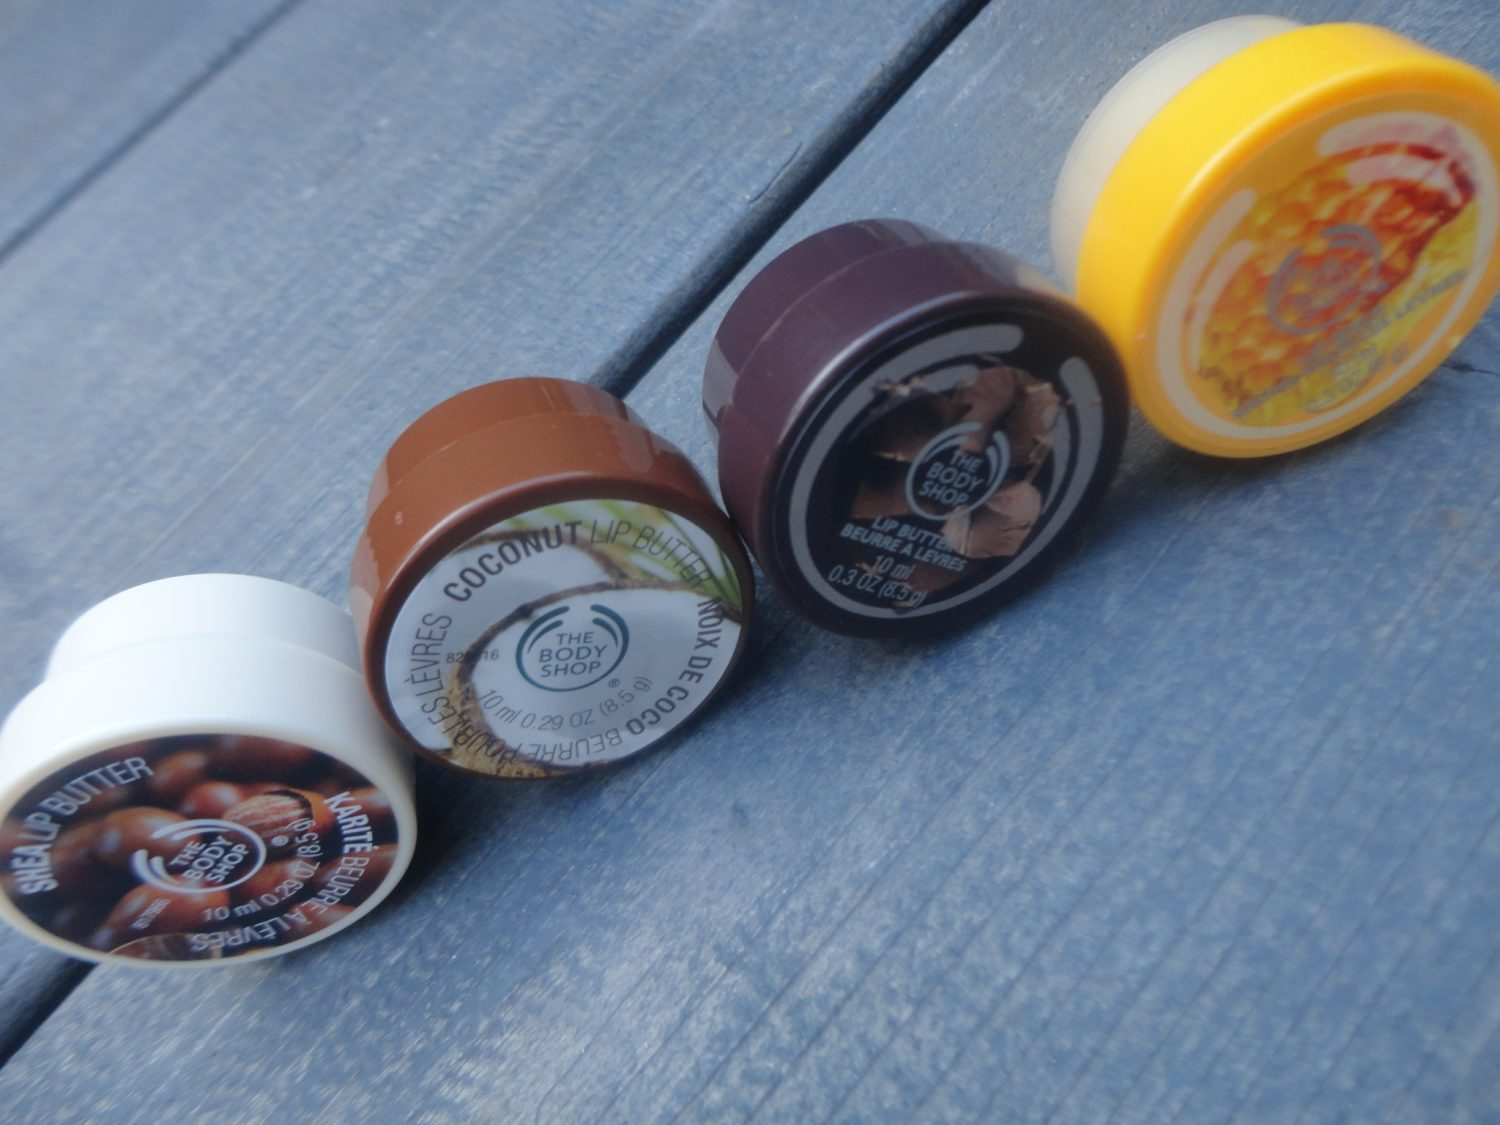 Review: The Body Shop Lip Butters